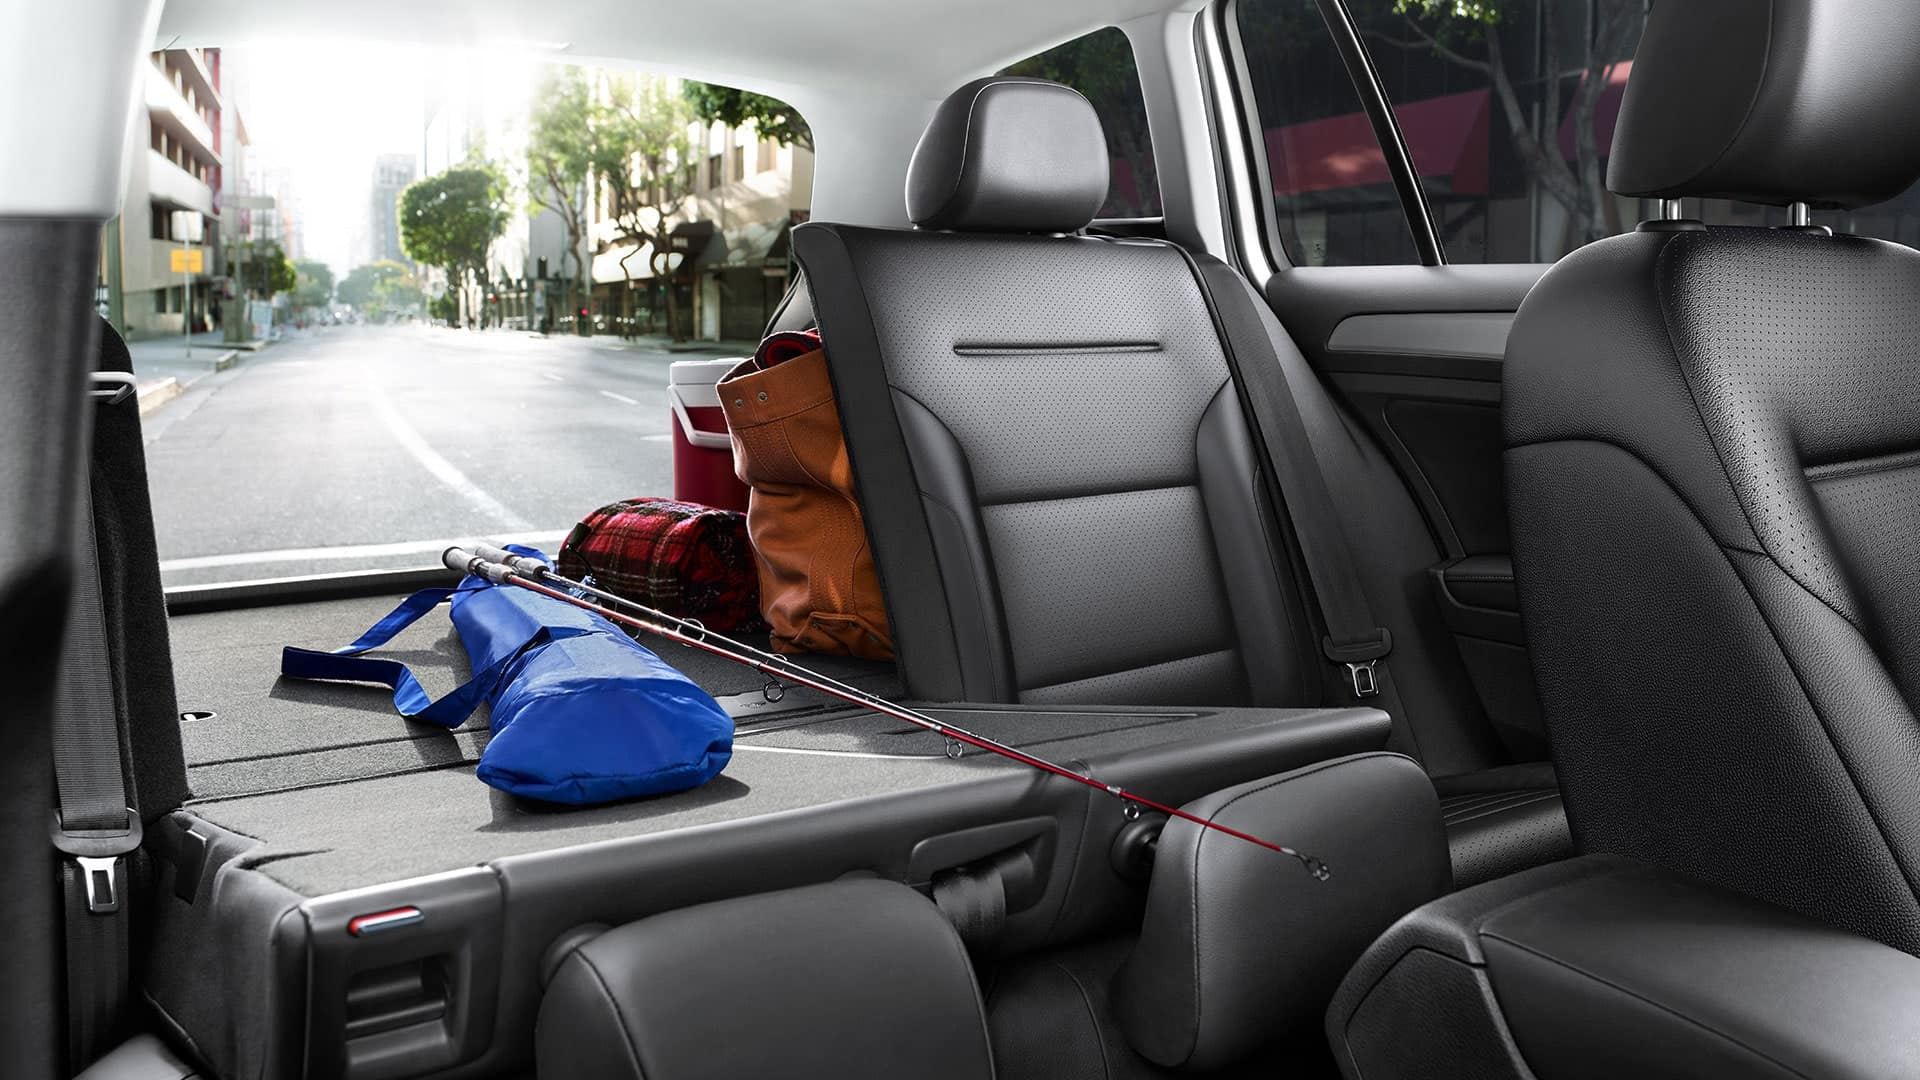 Photo depicting the adjustable cargo capabilities of the VW SportWagen